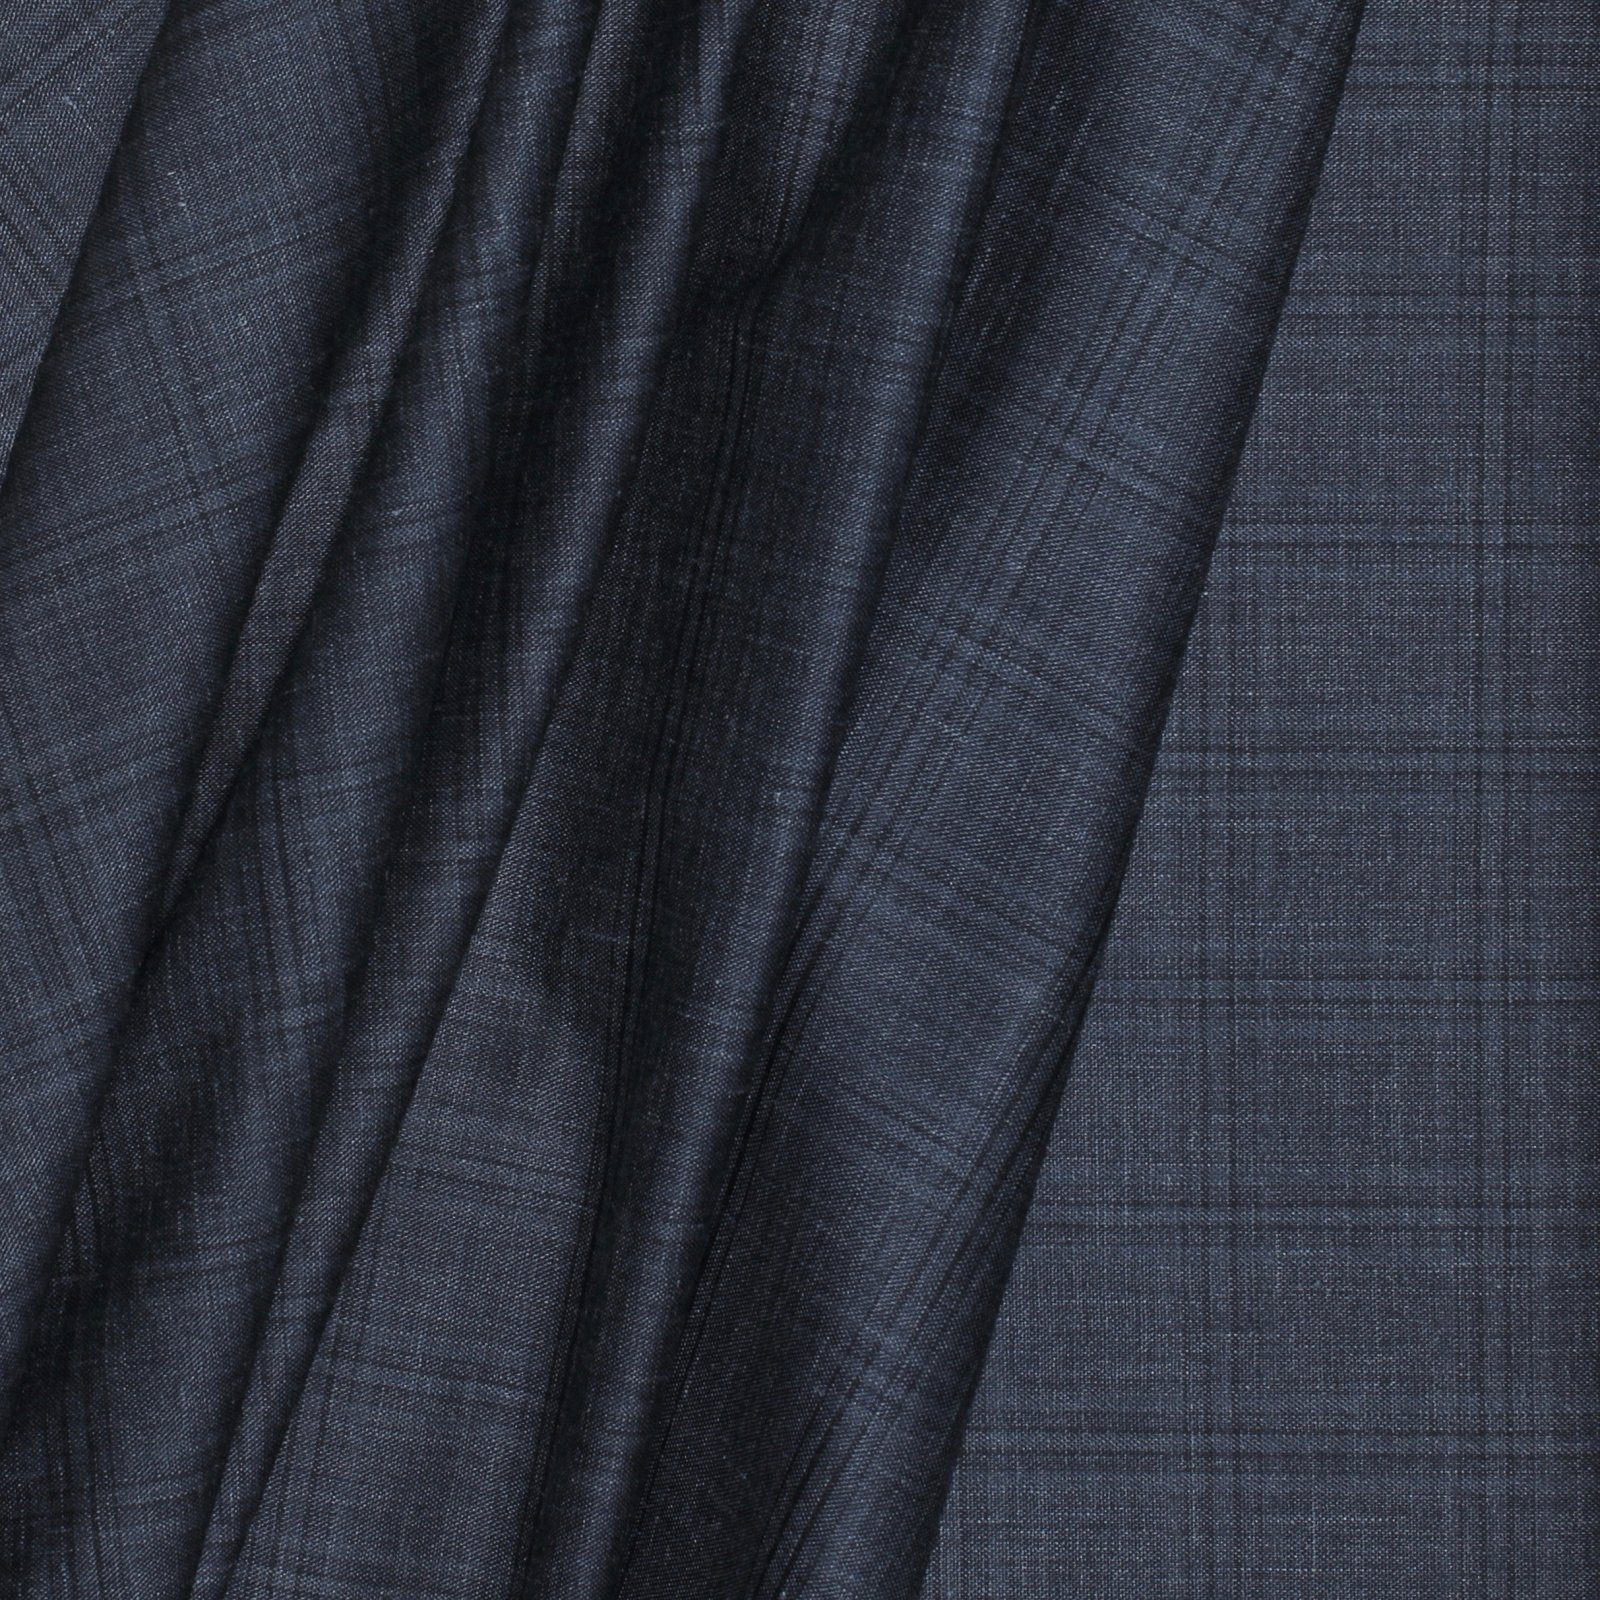 Charcoal Grey Plaid Wool/Linen/Silk Italian Blend